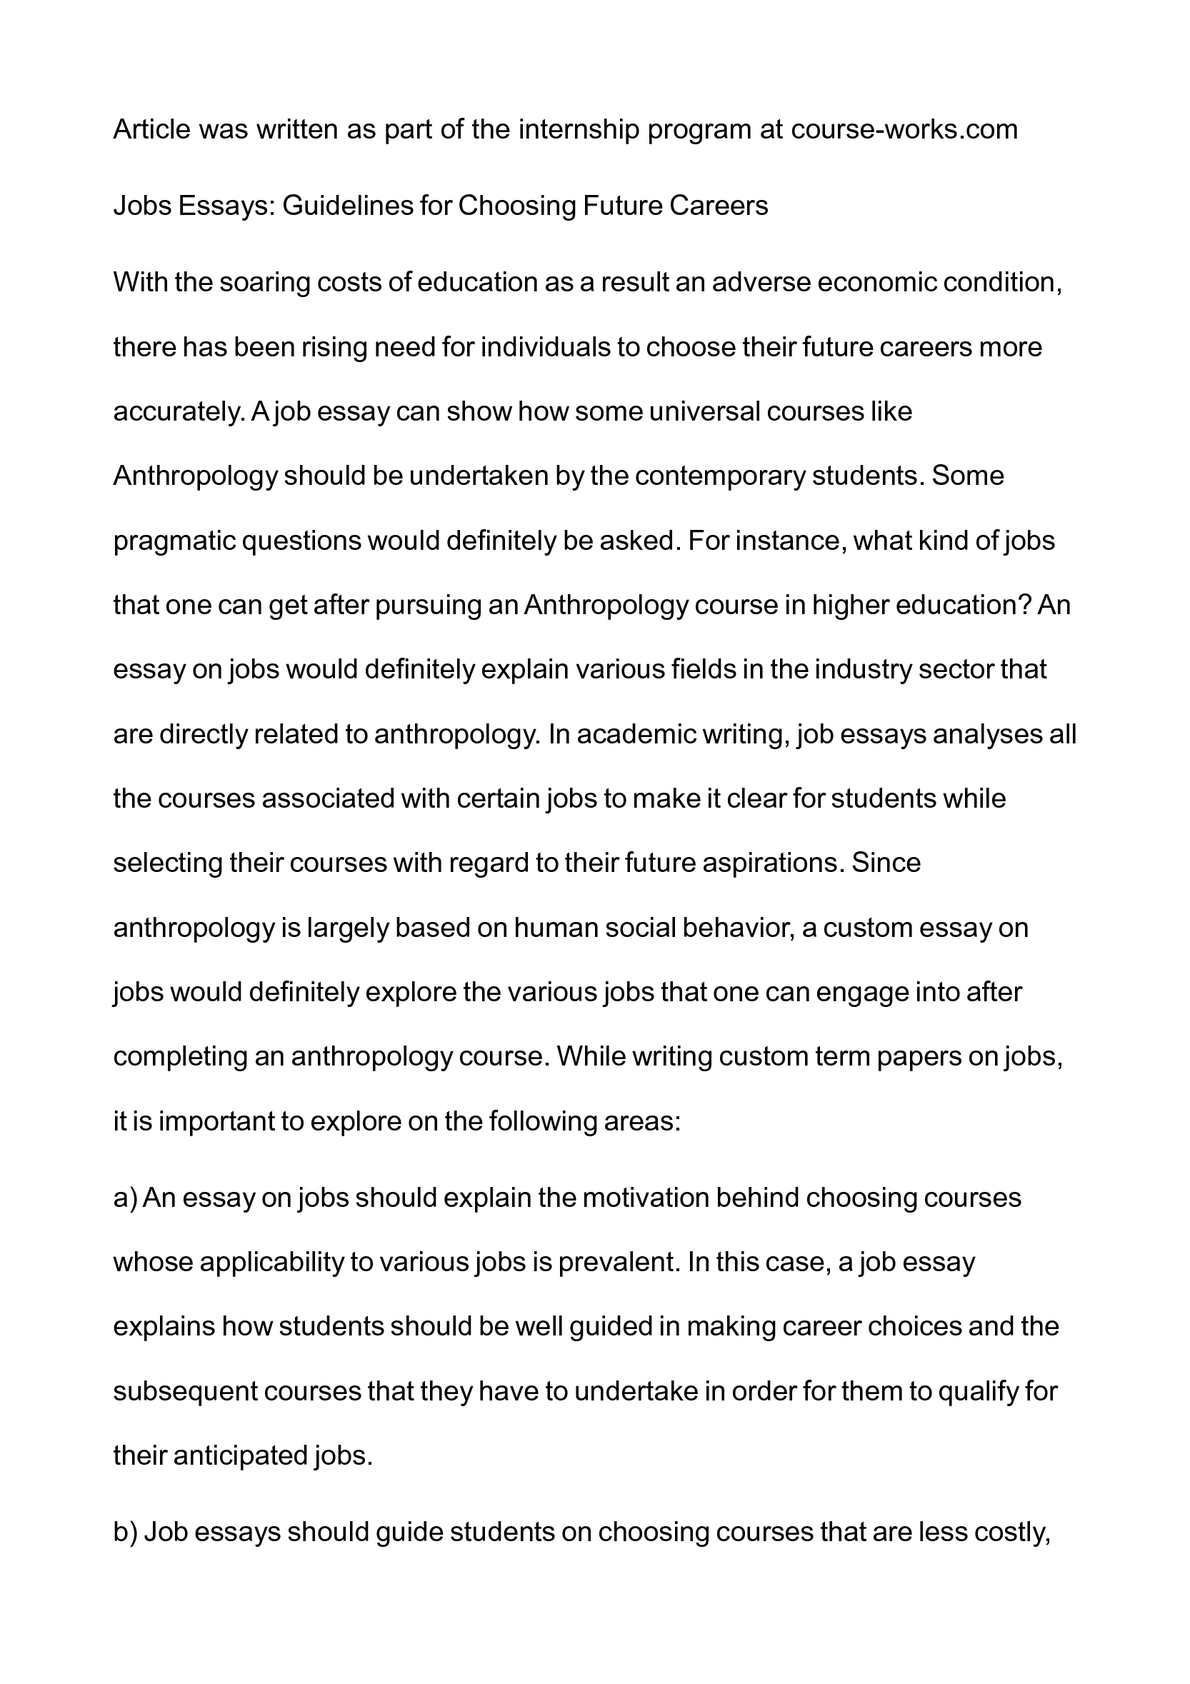 Thesis For Compare And Contrast Essay  Argumentative Essay Proposal also Science Essay Topic Calamo  Jobs Essays Guidelines For Choosing Future Careers How To Stay Healthy Essay